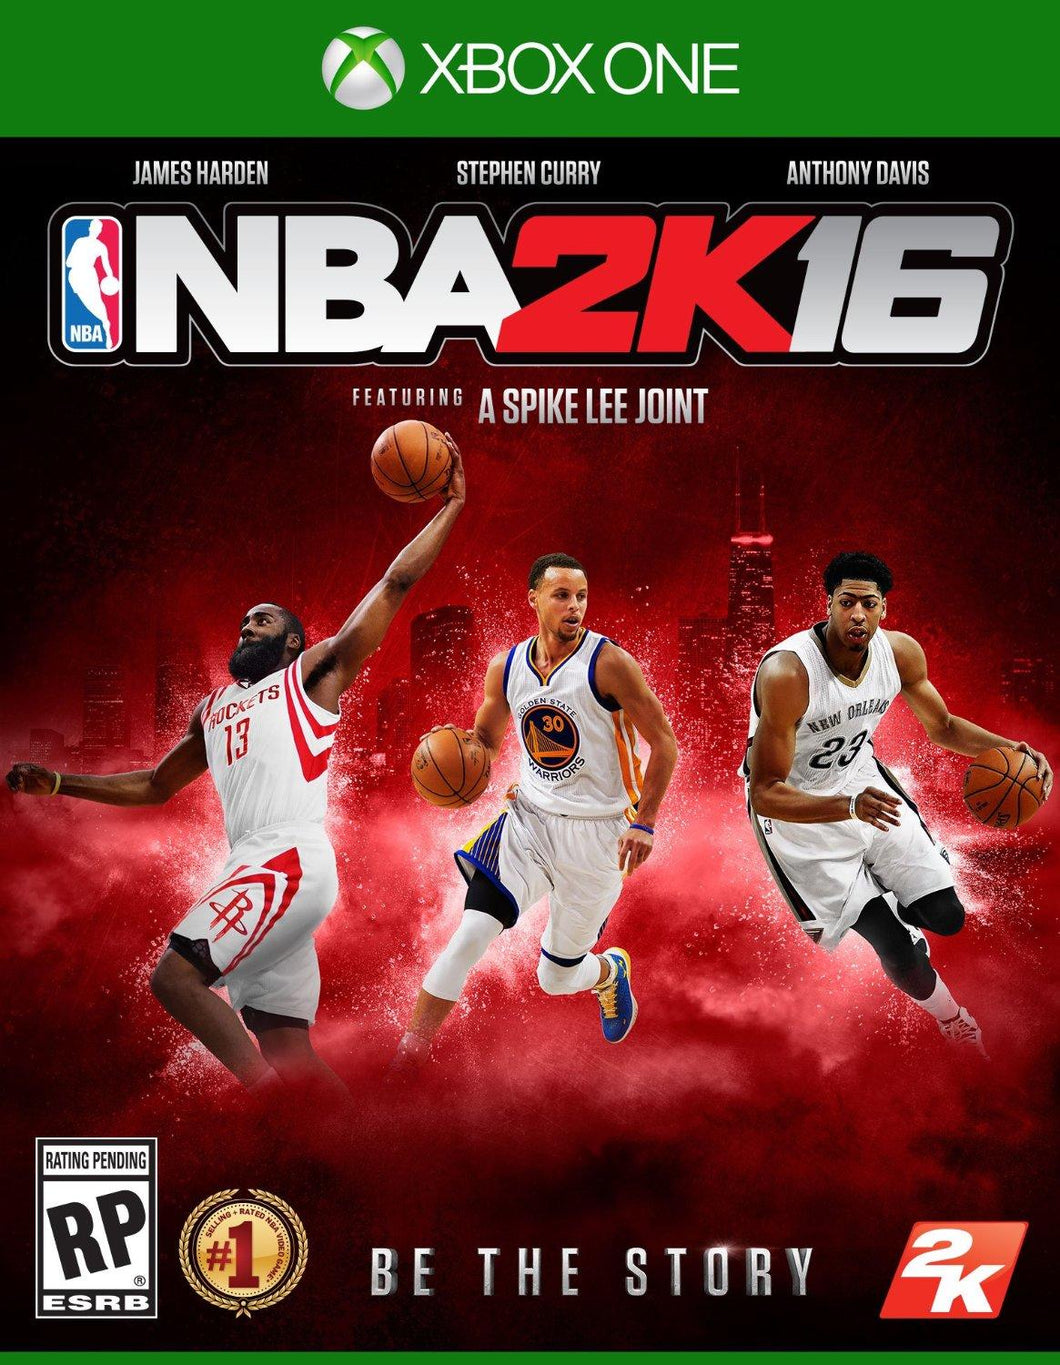 Xbox One - NBA 2K16 (USADO)